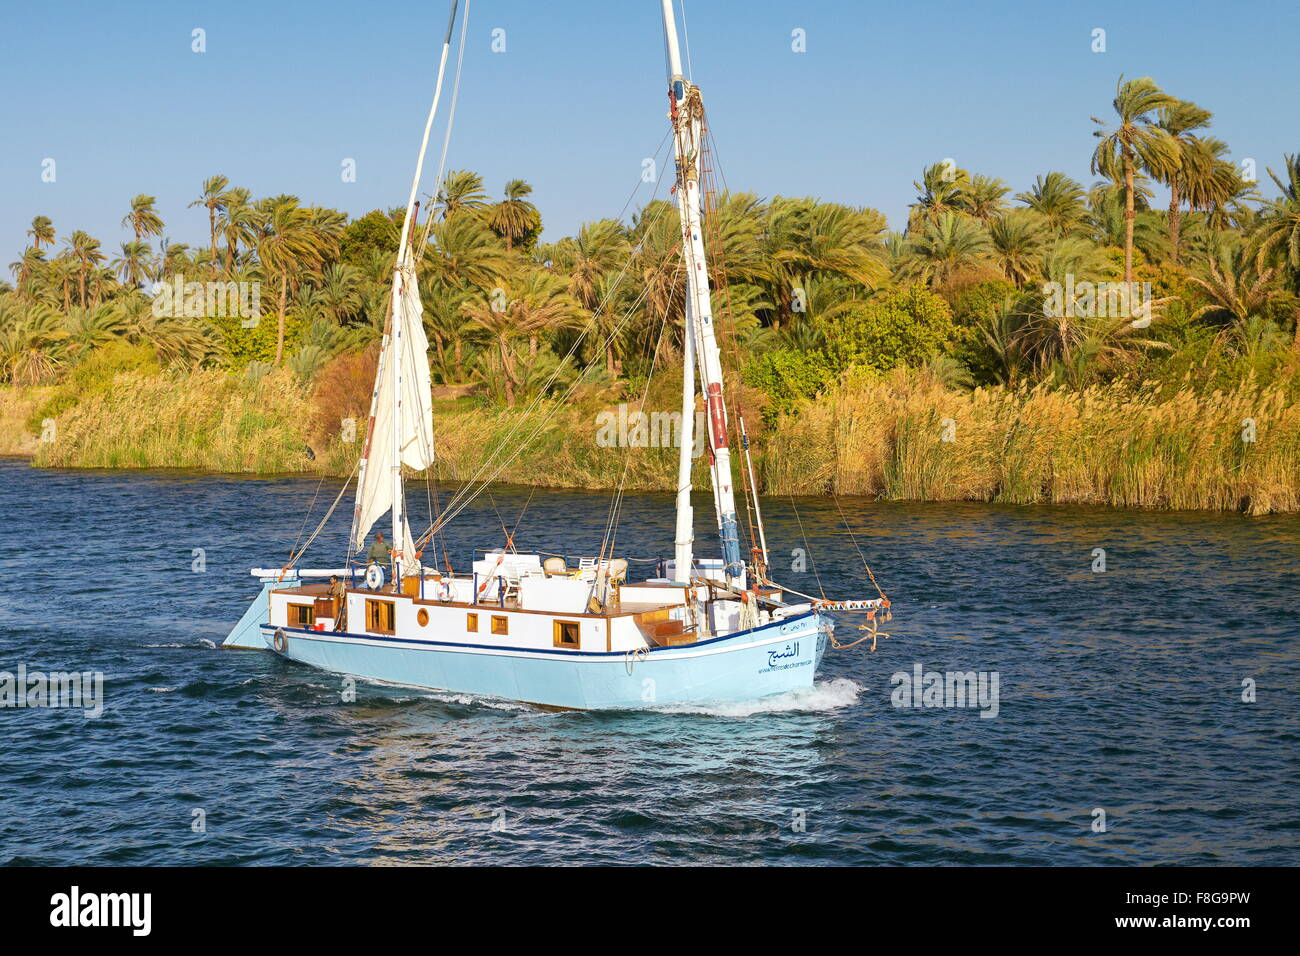 Egypt - felucca boat on the Nile river, Nile valley near Aswan - Stock Image